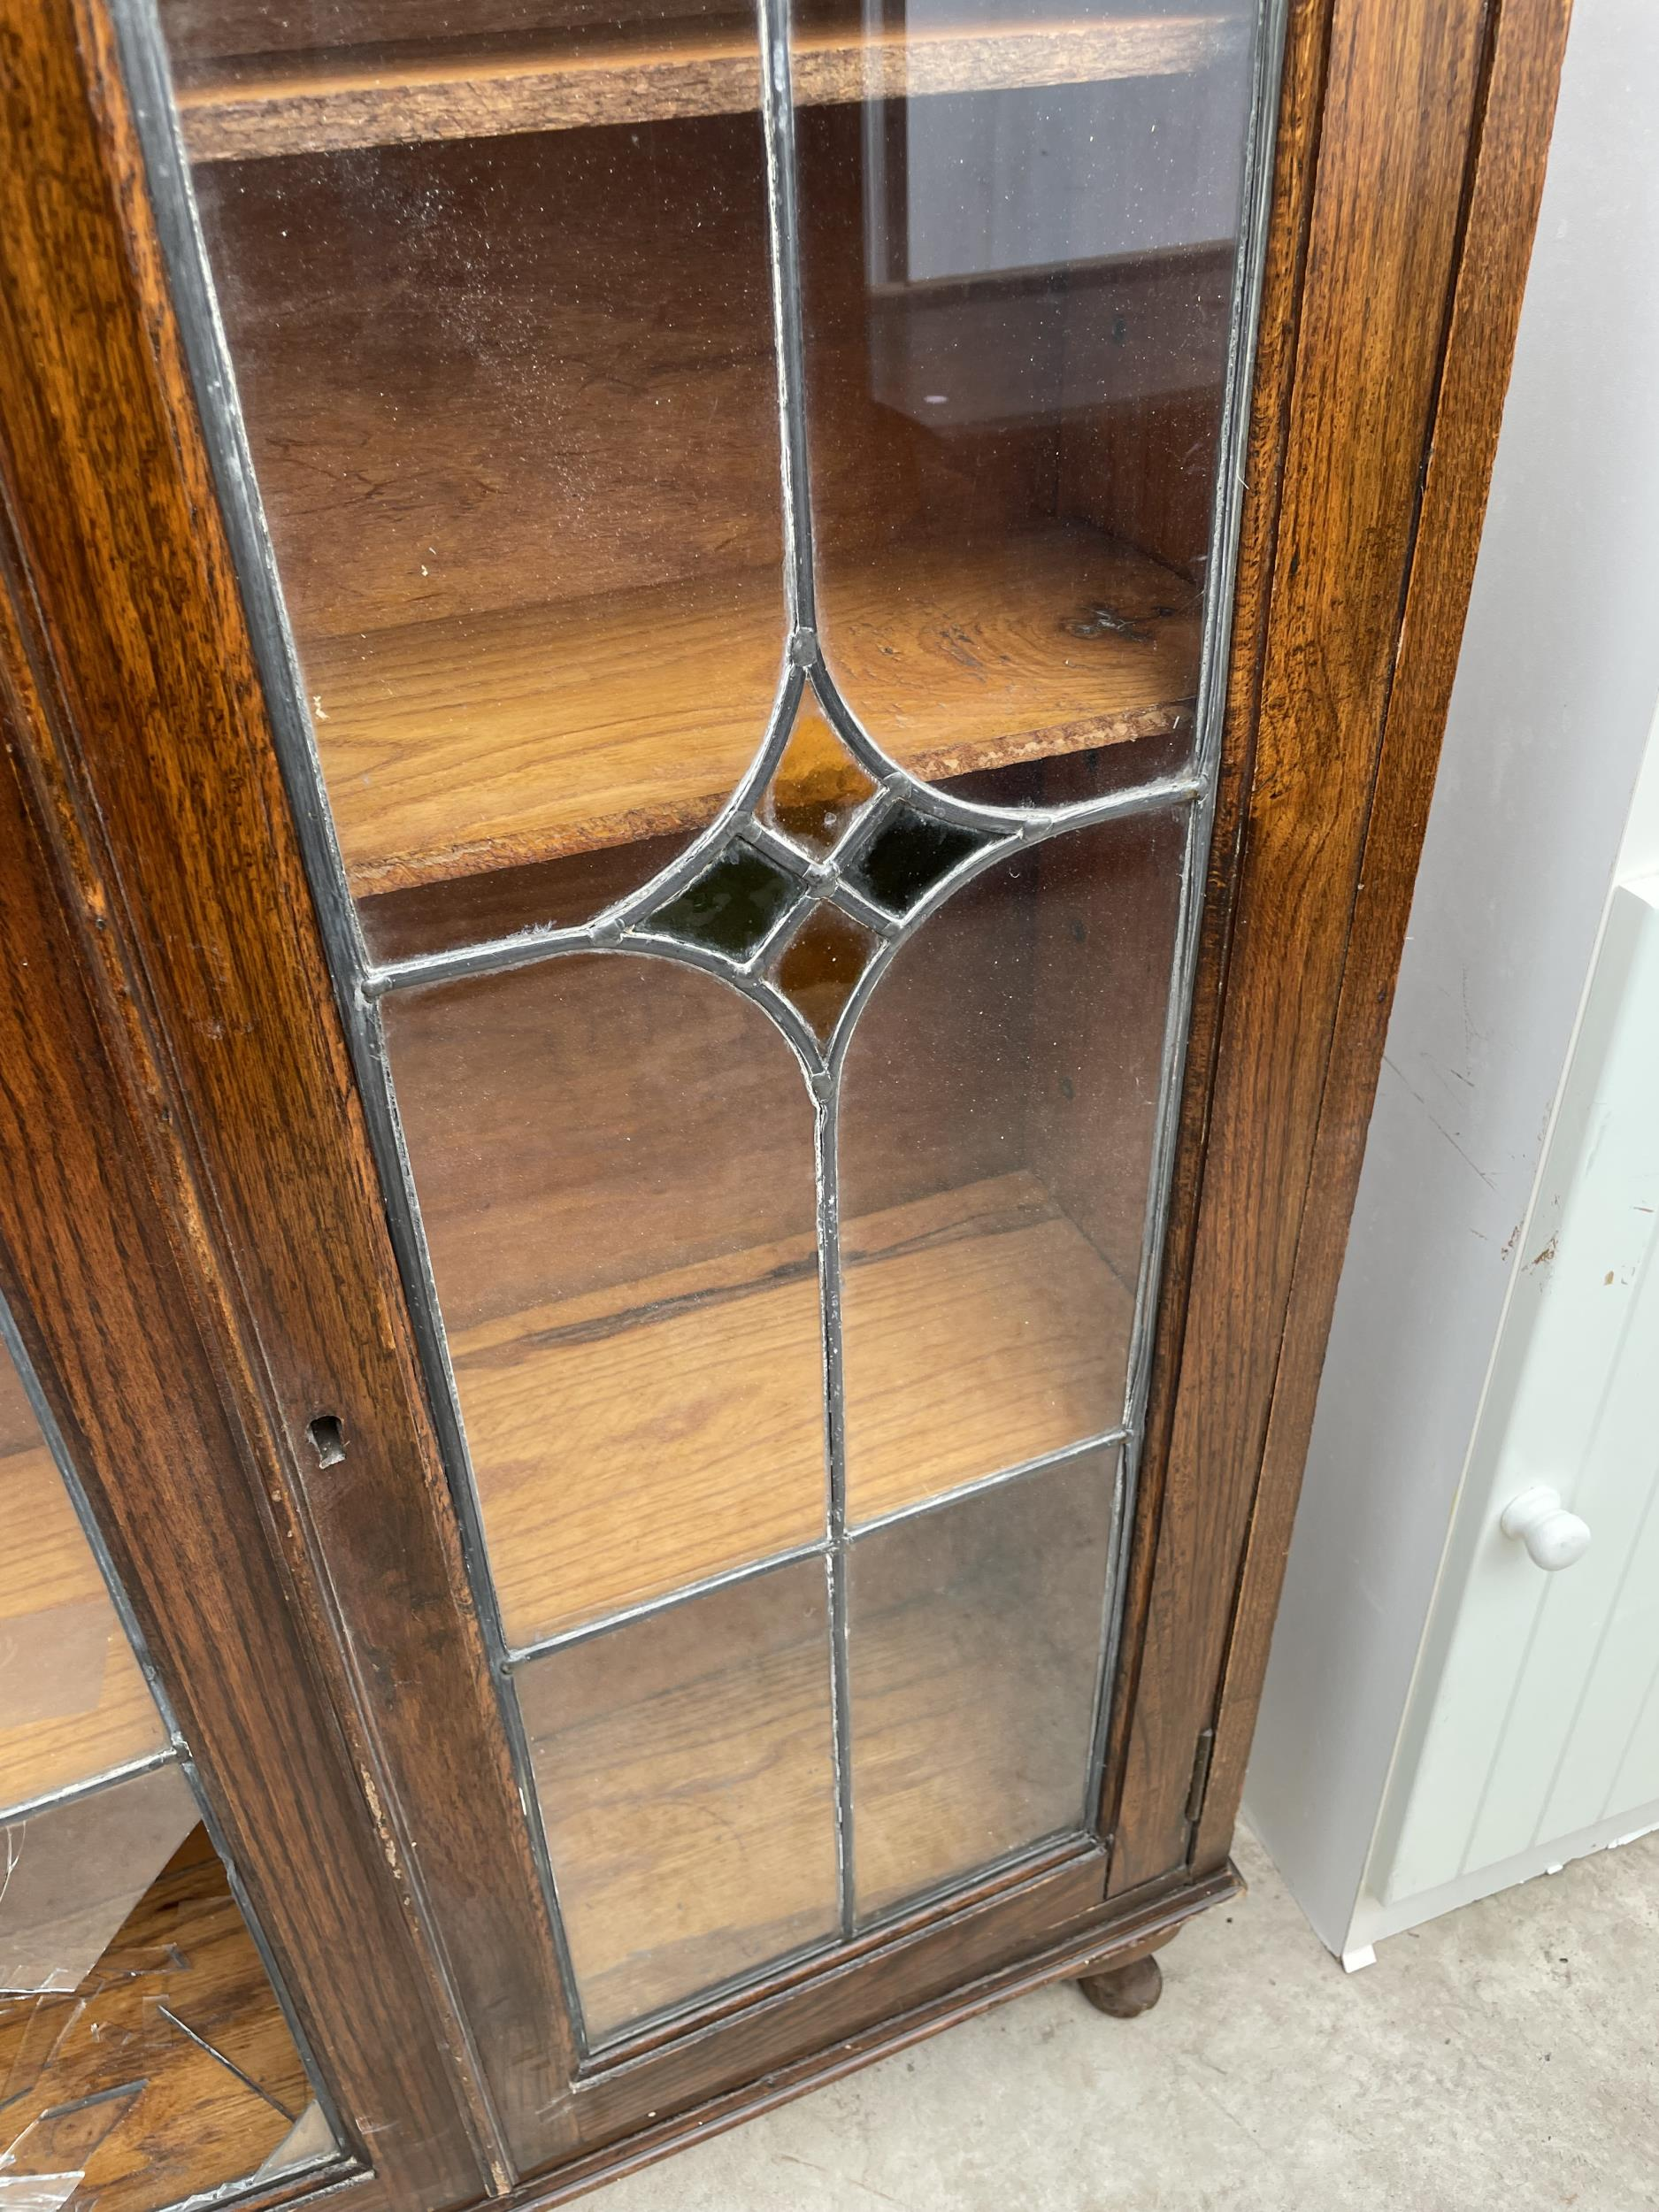 """AN EARLY 20TH CENTURY OAK GLAZED AND LEADED TWO DOOR BOOKCASE, 28.5"""" WIDE ON CABRIOLE LEGS - Image 4 of 6"""